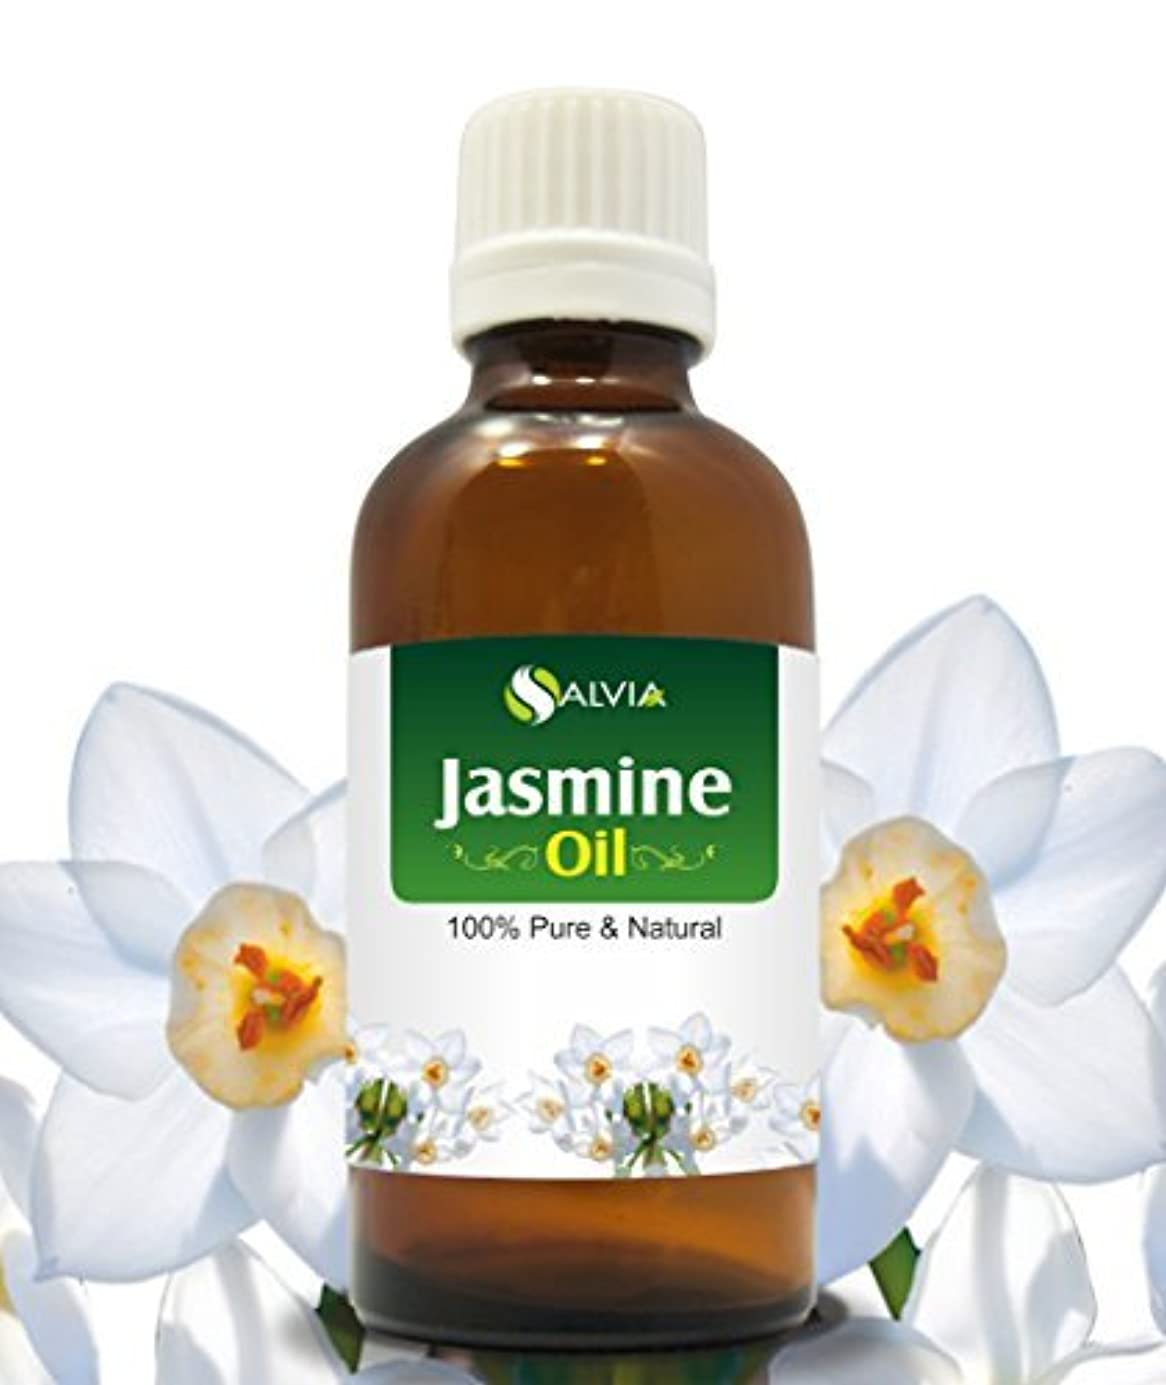 剃る半円緊急JASMINE OIL 100% NATURAL PURE UNDILUTED UNCUT ESSENTIAL OILS 30ml by SALVIA